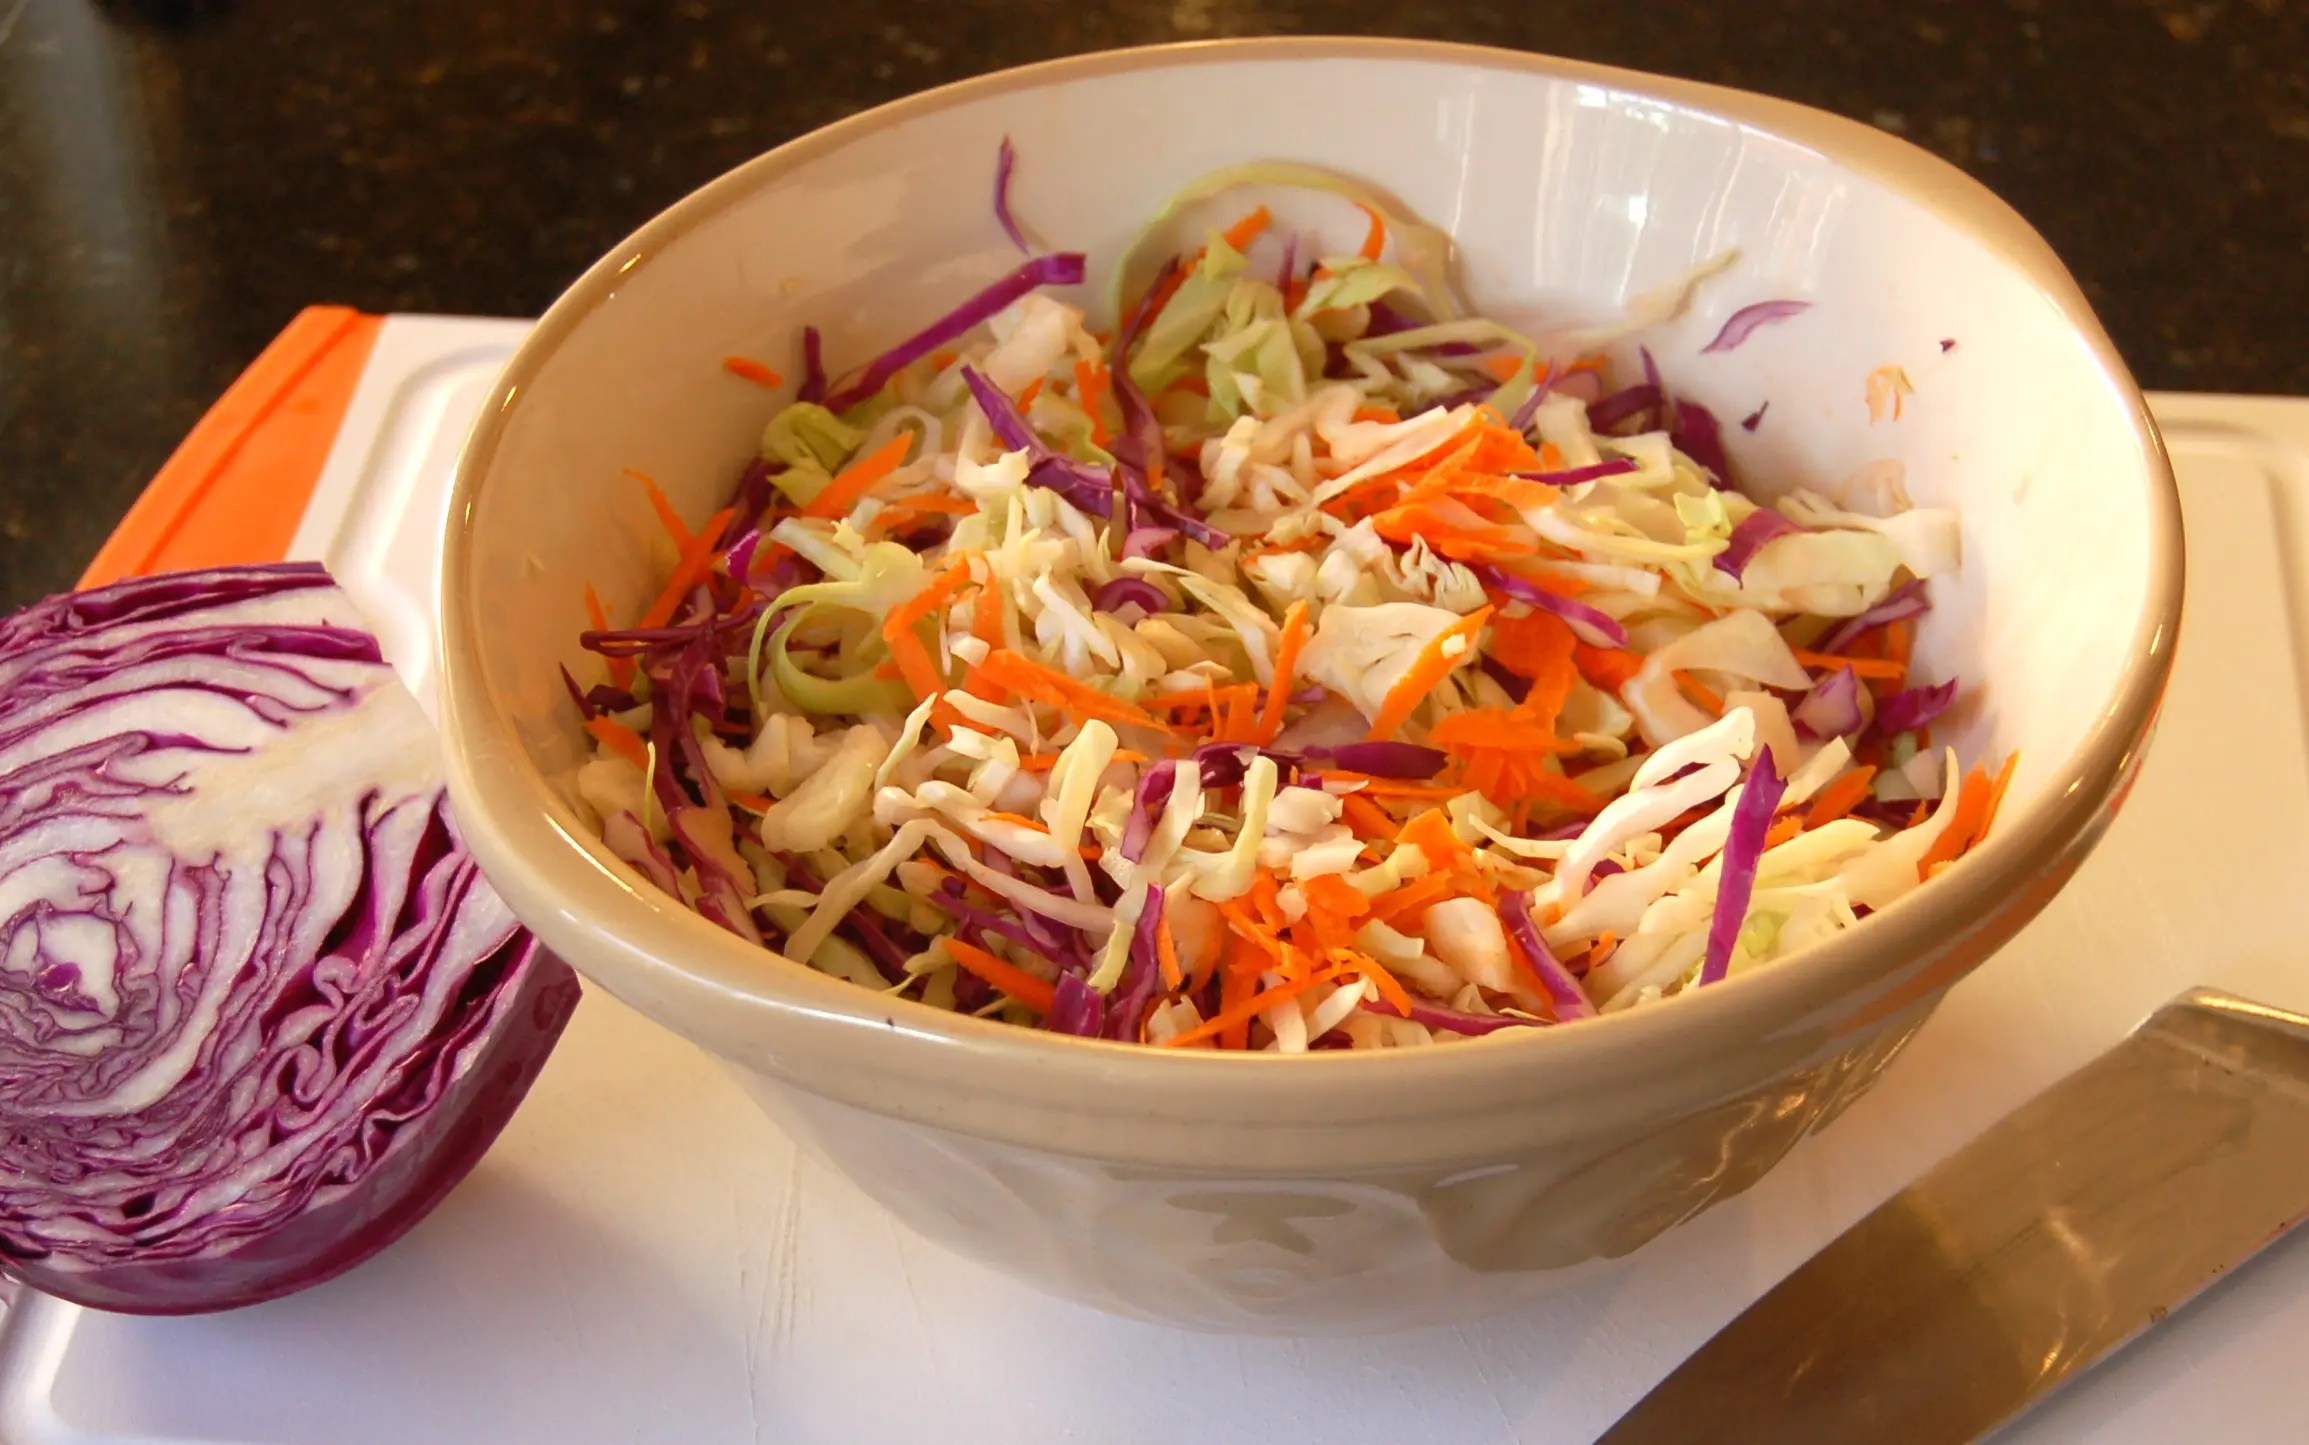 Easy Coleslaw with Celery Seed and Apple Cider Vinegar